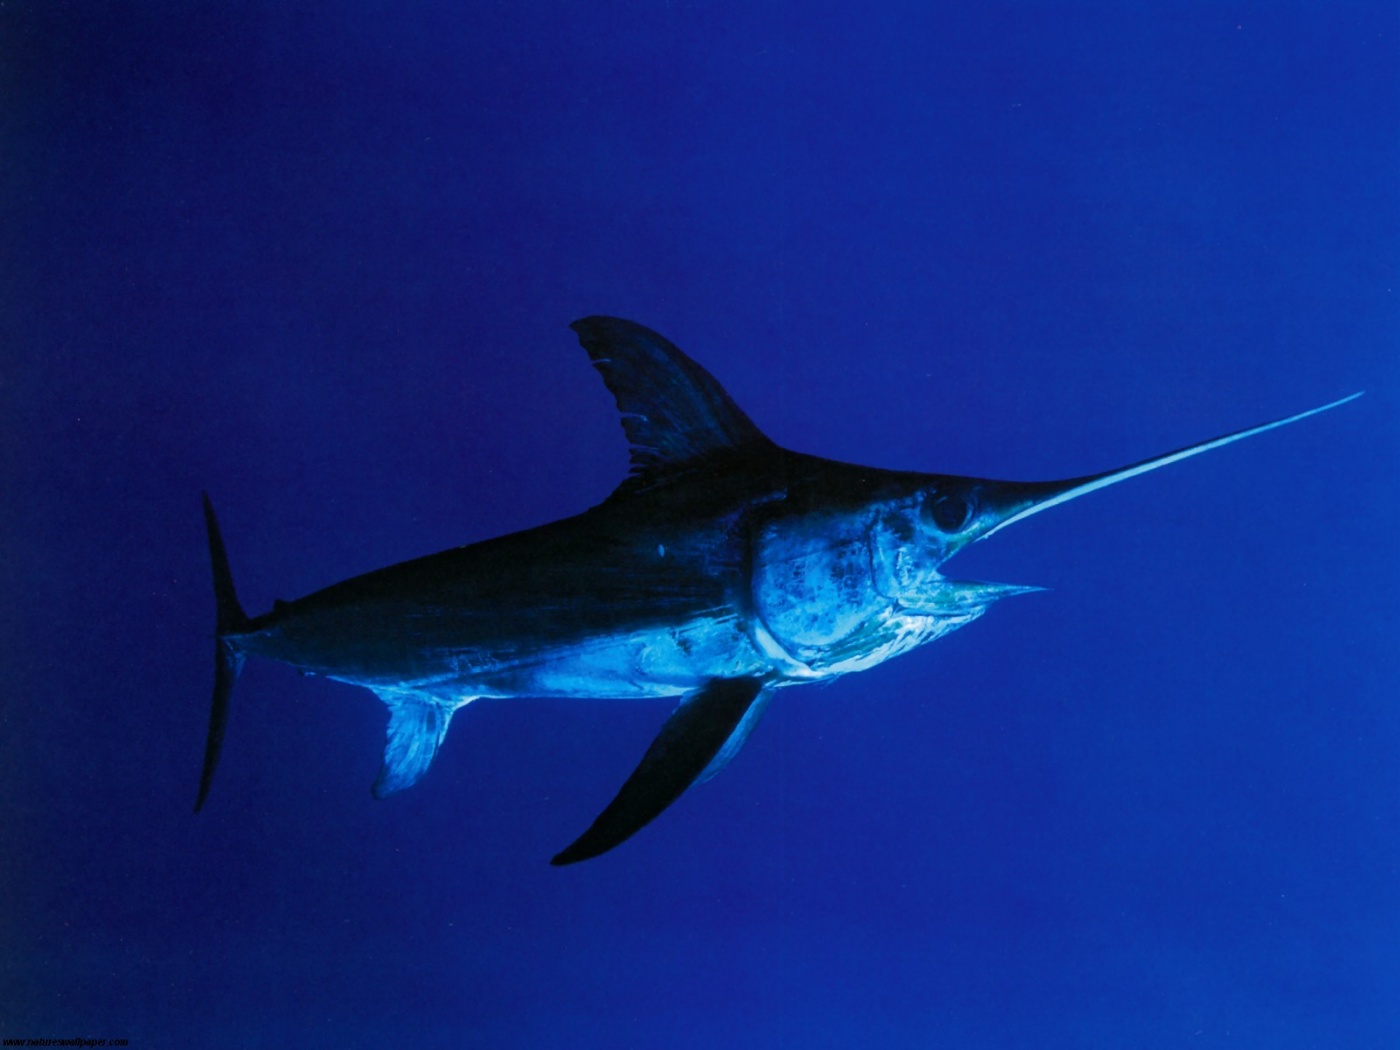 A swordfish impaled a Hawaiian fisherman after having been speared by the fisherman itself, state officials said on Saturday.